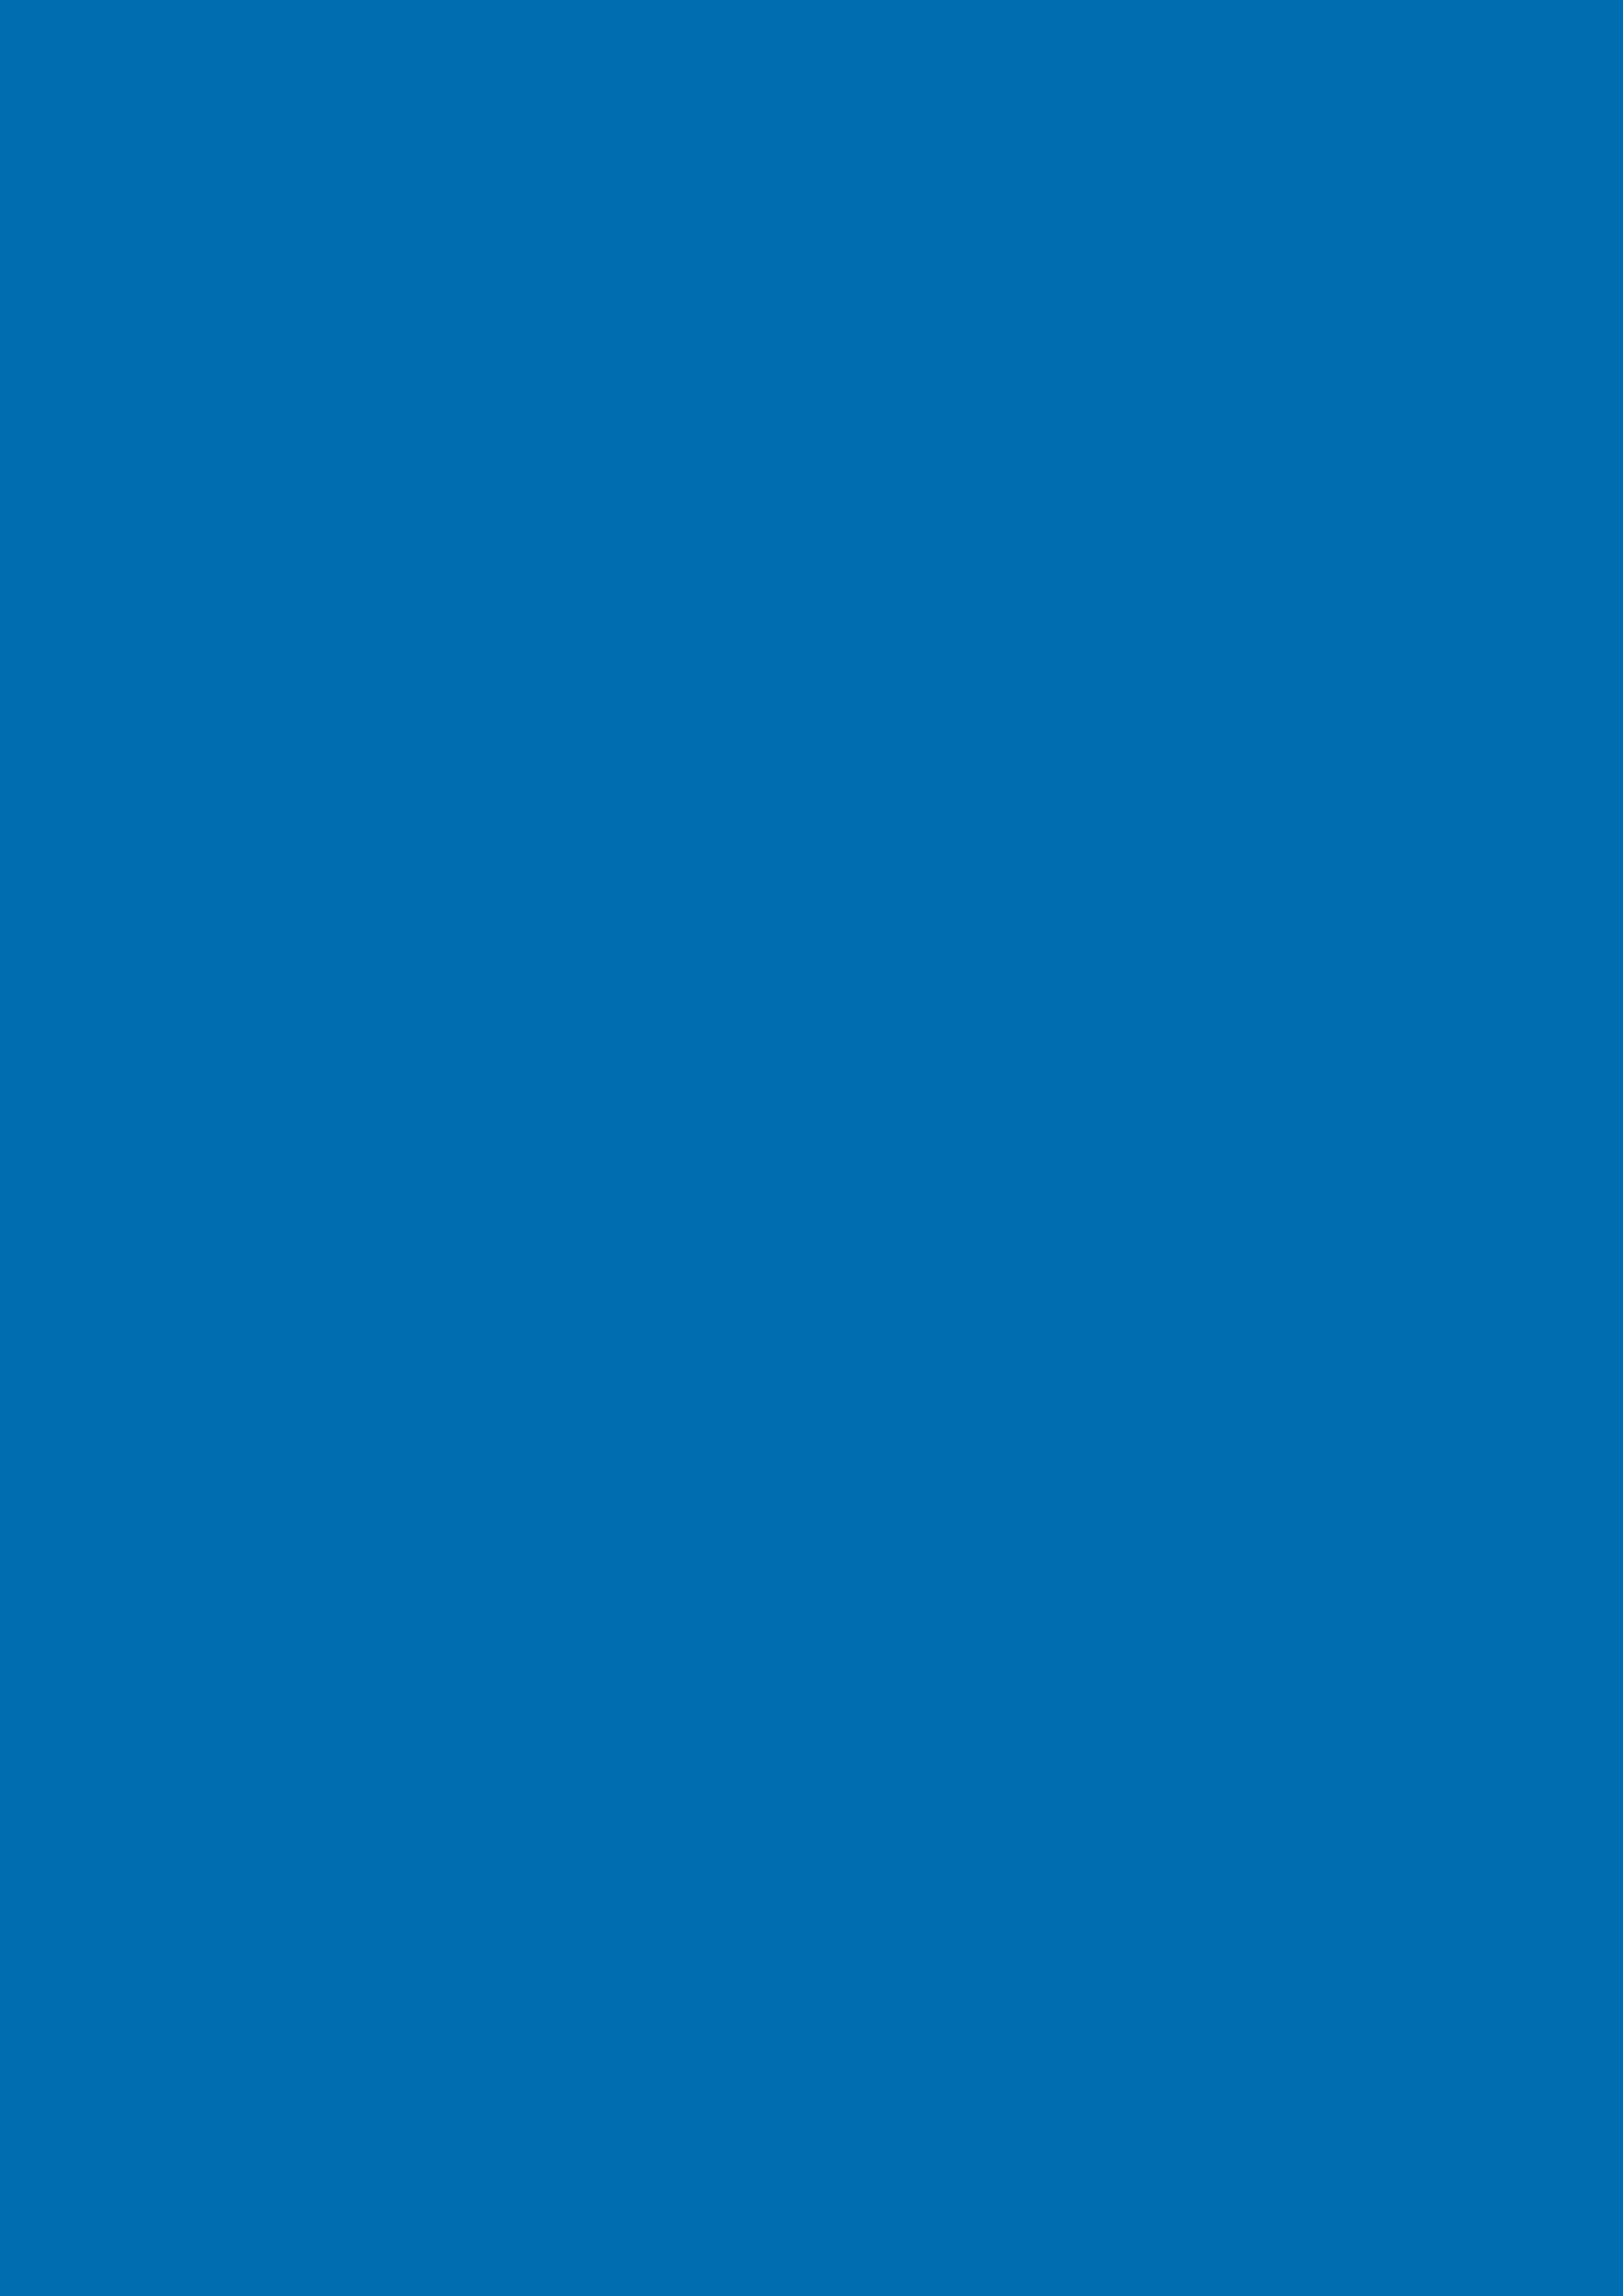 2480x3508 Honolulu Blue Solid Color Background